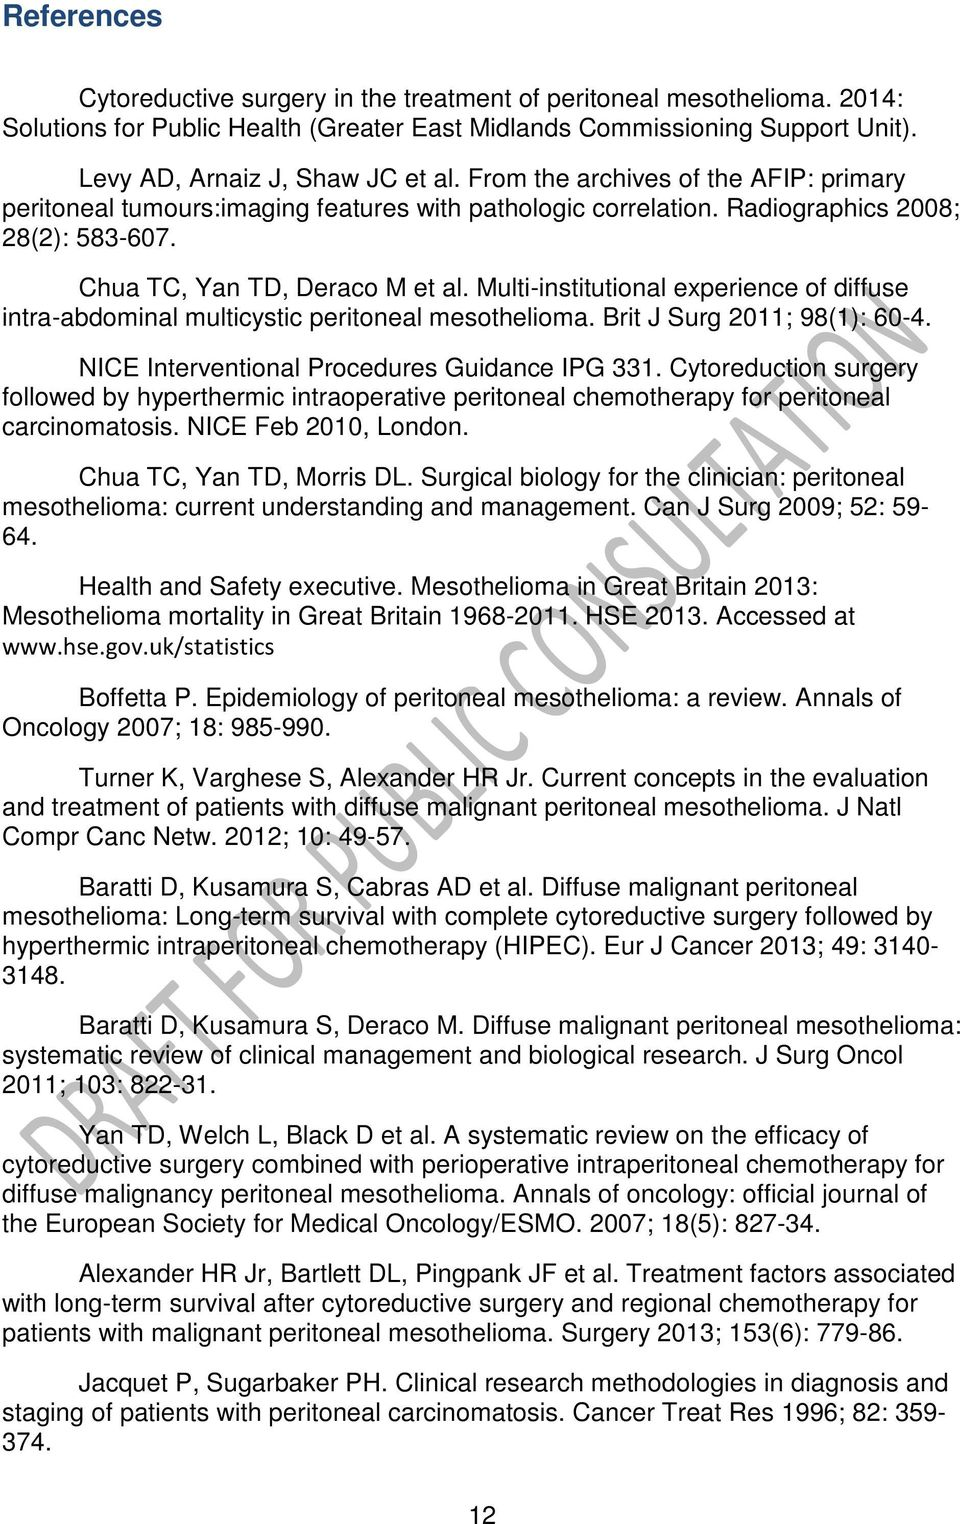 Multi-institutional experience of diffuse intra-abdominal multicystic peritoneal mesothelioma. Brit J Surg 2011; 98(1): 60-4. NICE Interventional Procedures Guidance IPG 331.